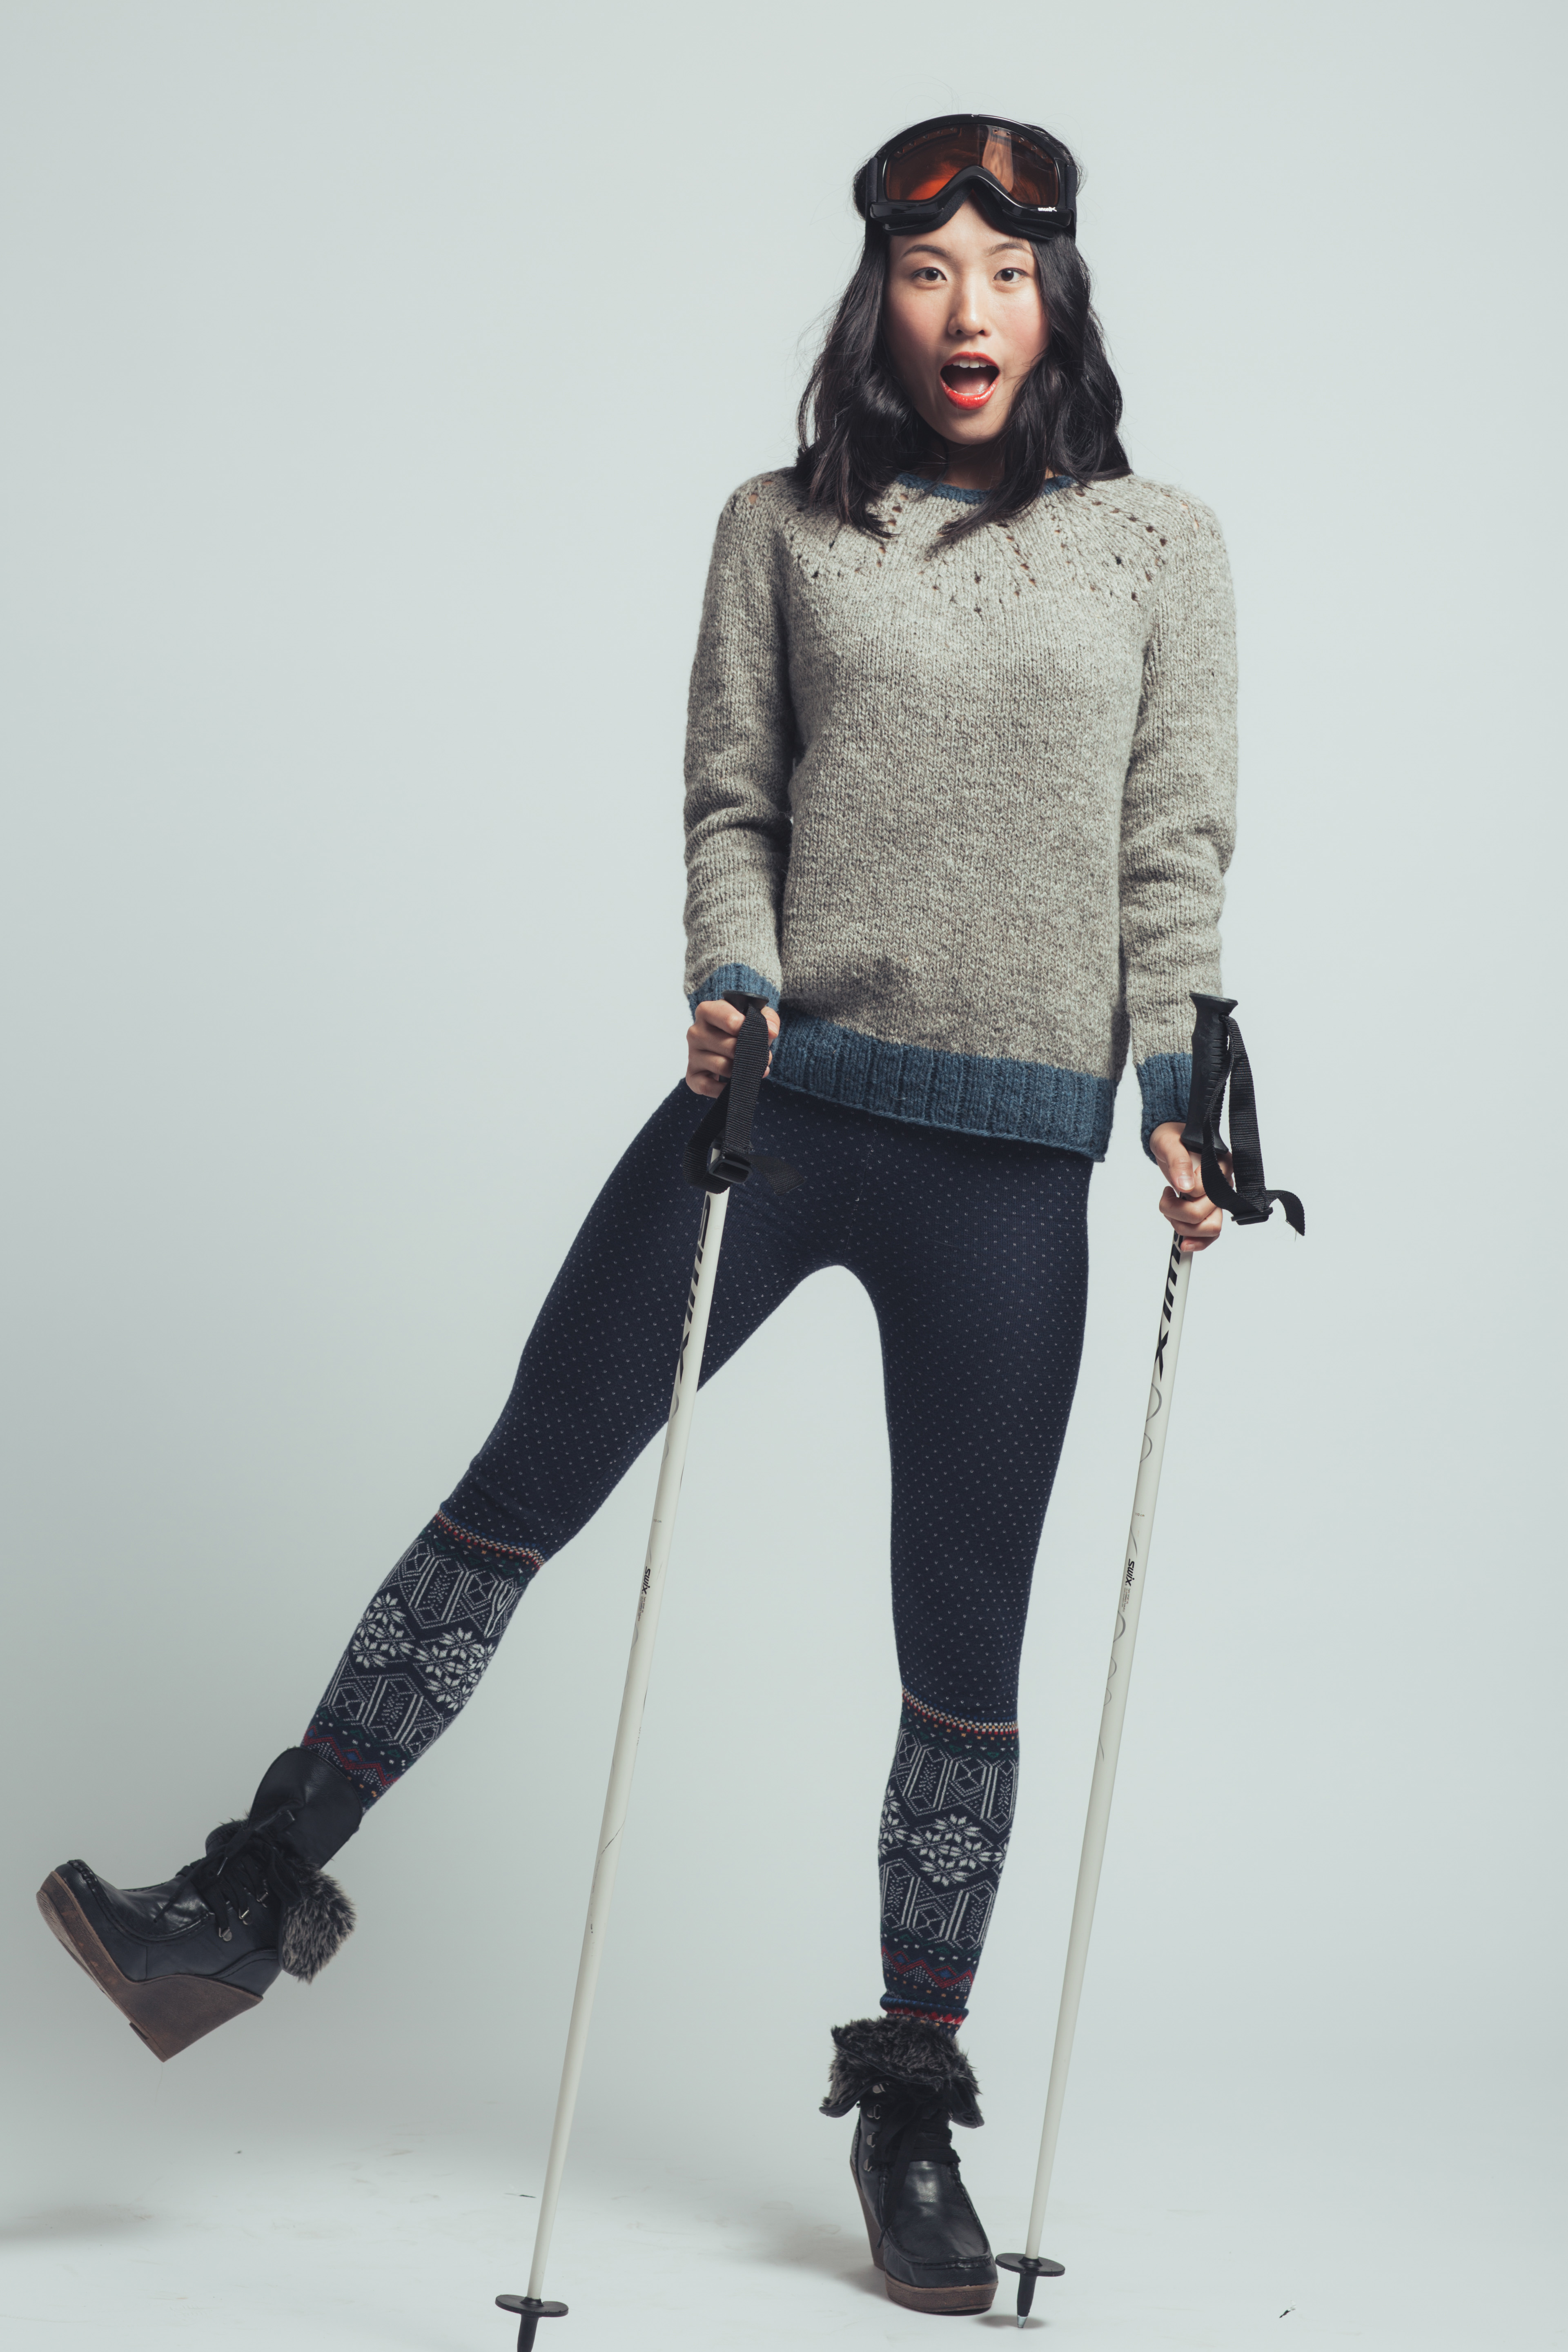 Slopes Pullover by Jesie Ostermiller from knitscene Winter 2016